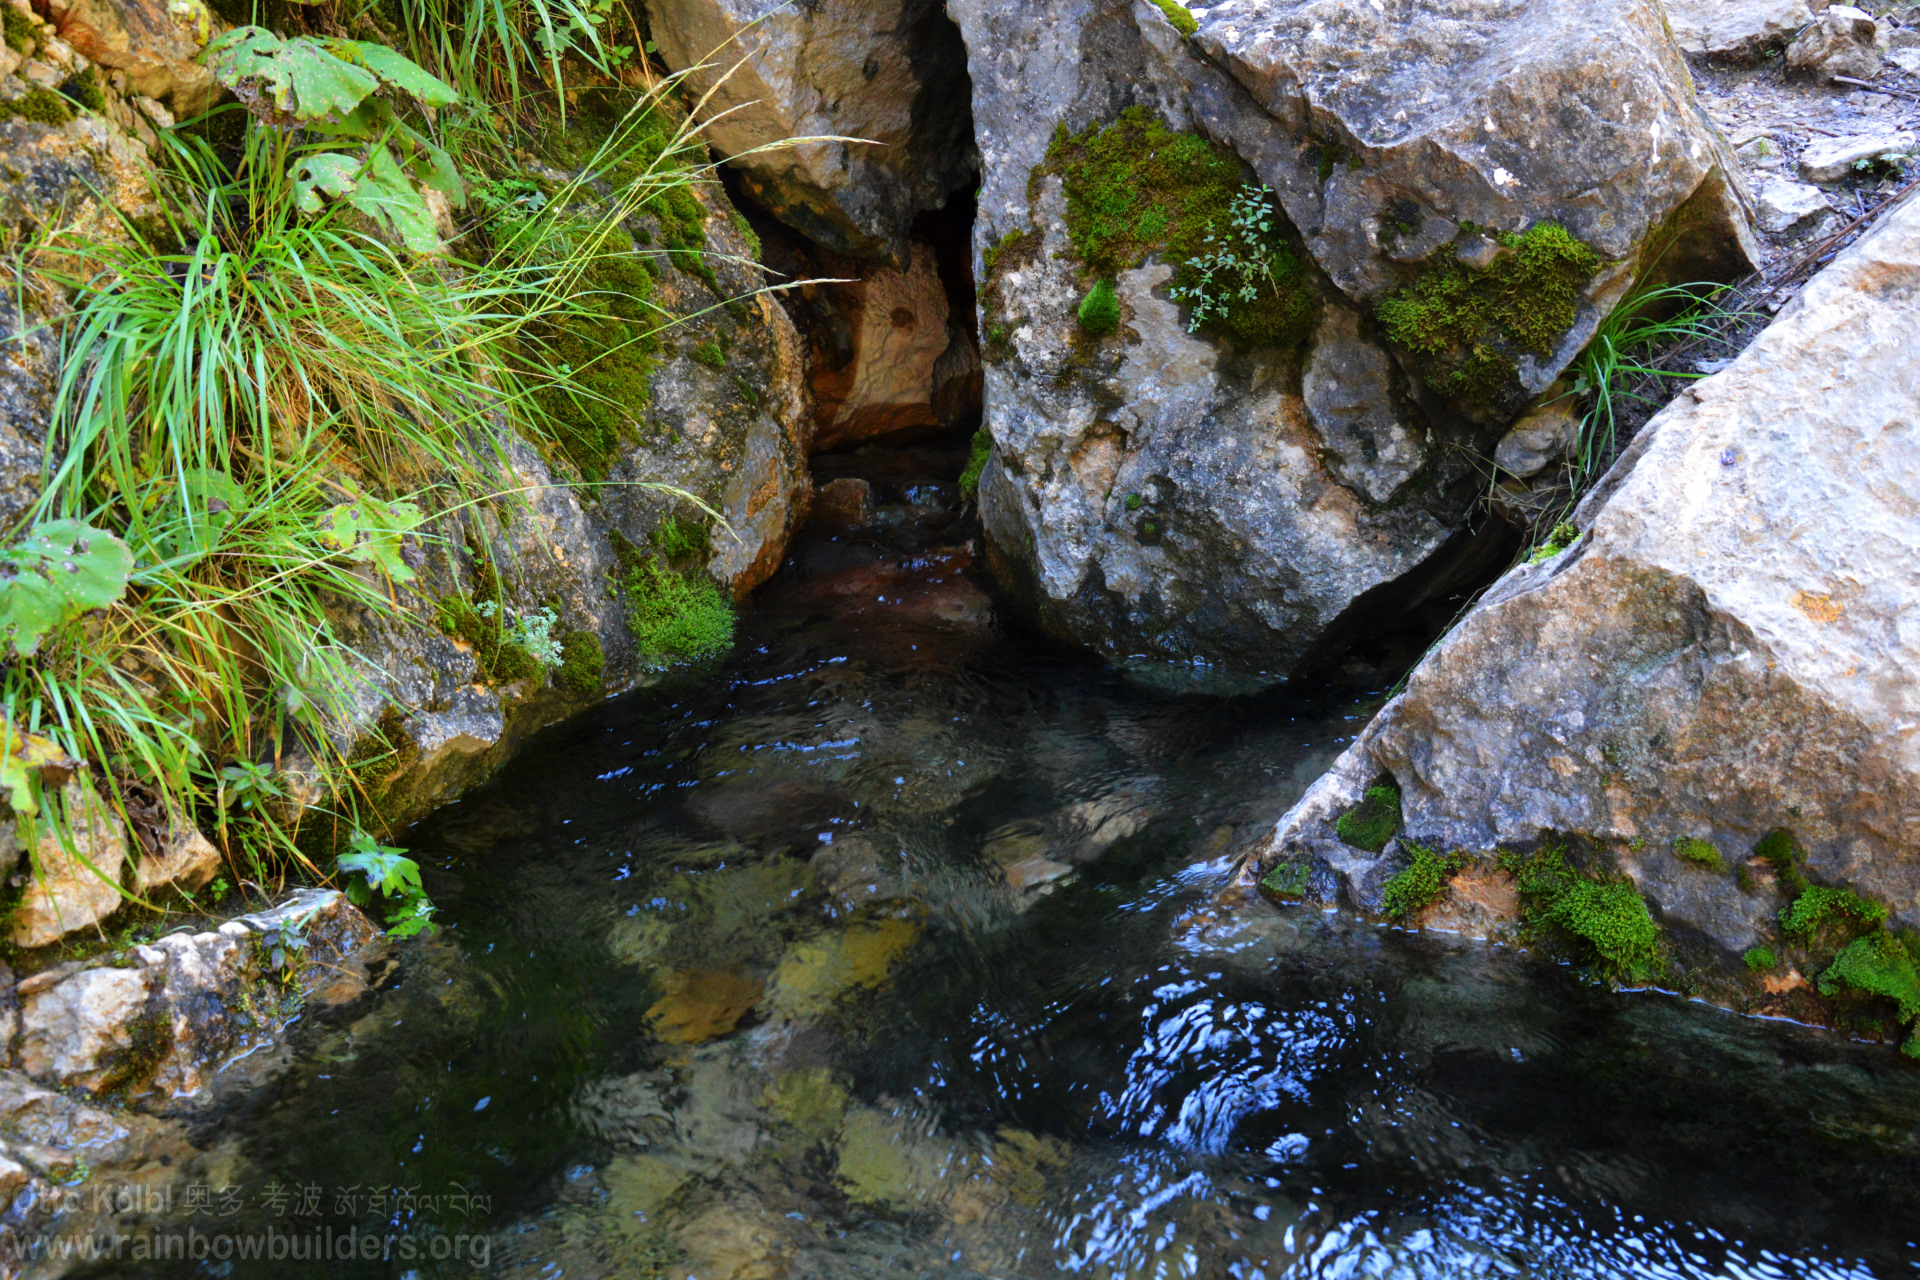 You can see the pure and clean source water flowing out between the rocks.